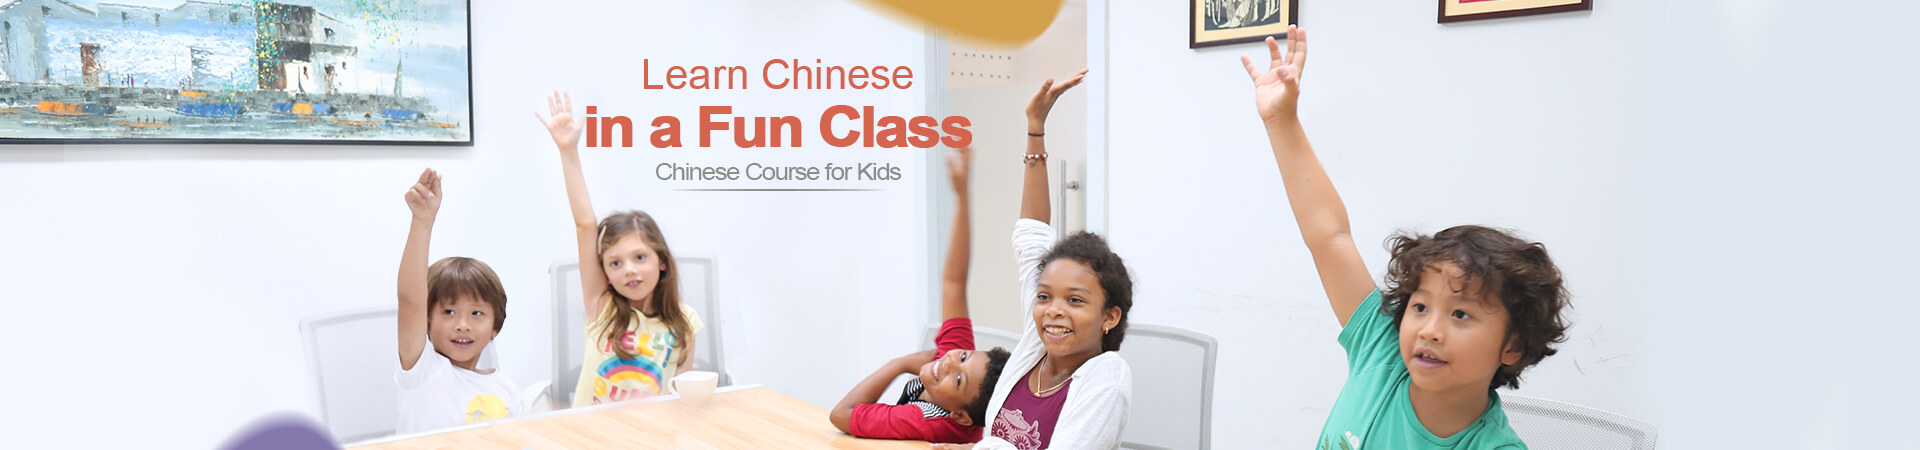 chinese-course-for-children-banner